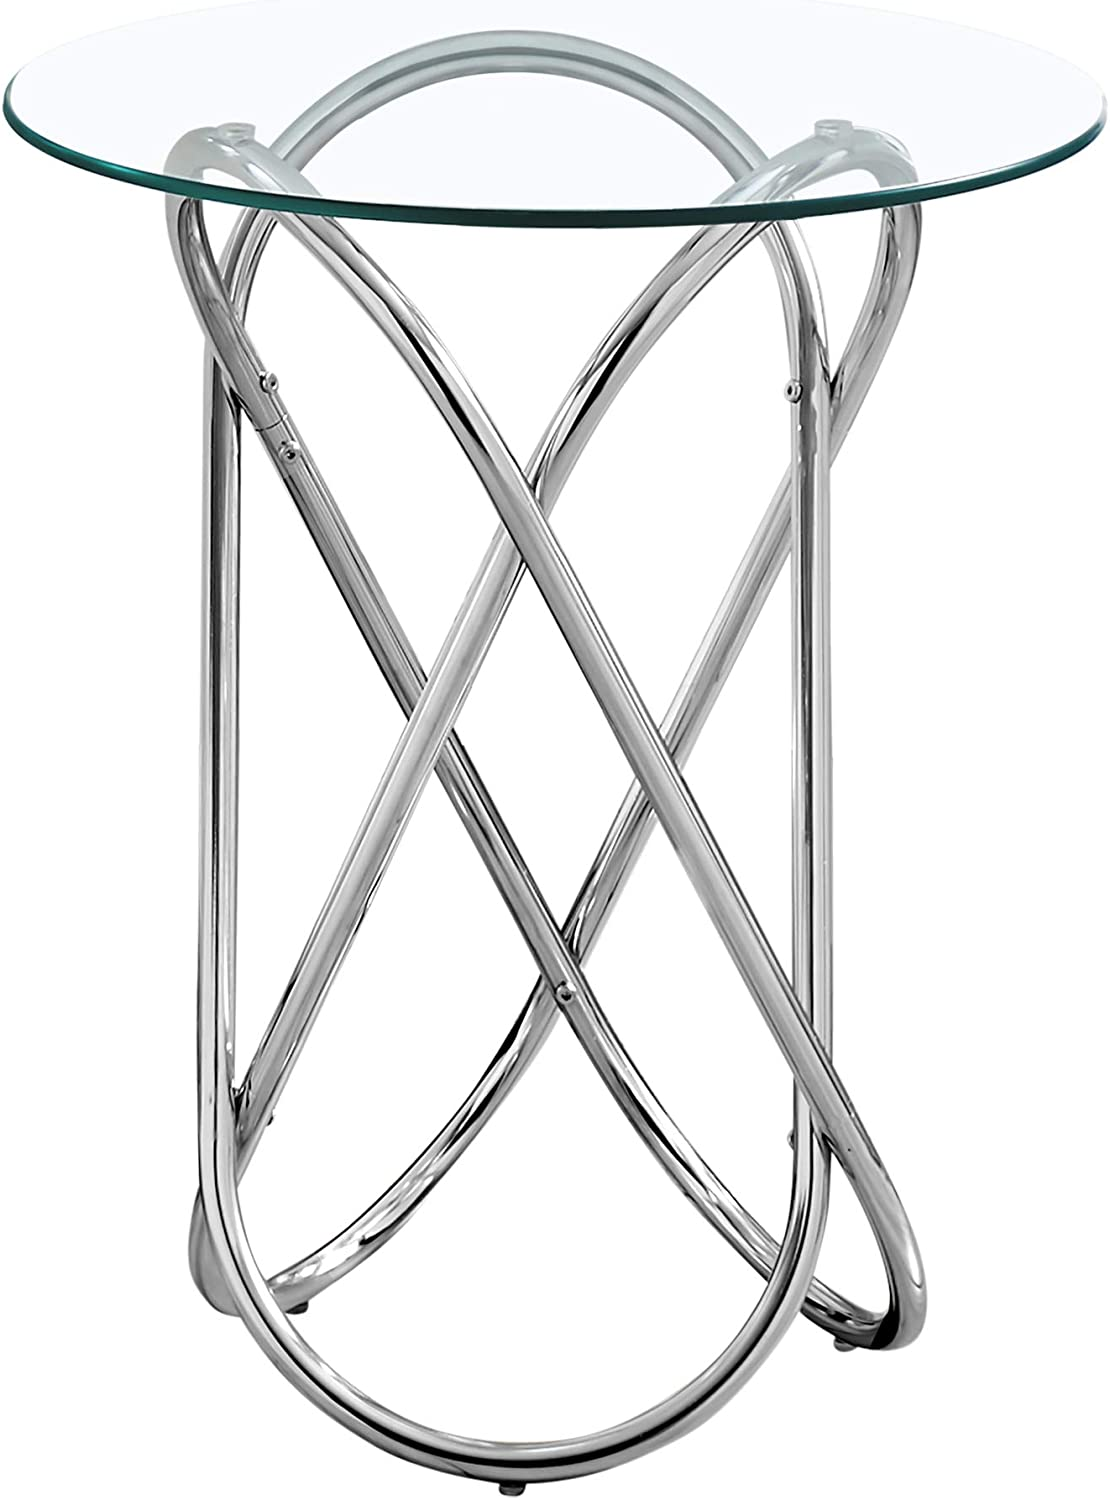 Chrome Monarch Specialties I 3310 Round Side End Accent Table Metal Base Oval Shape for Living Room Side Table 20